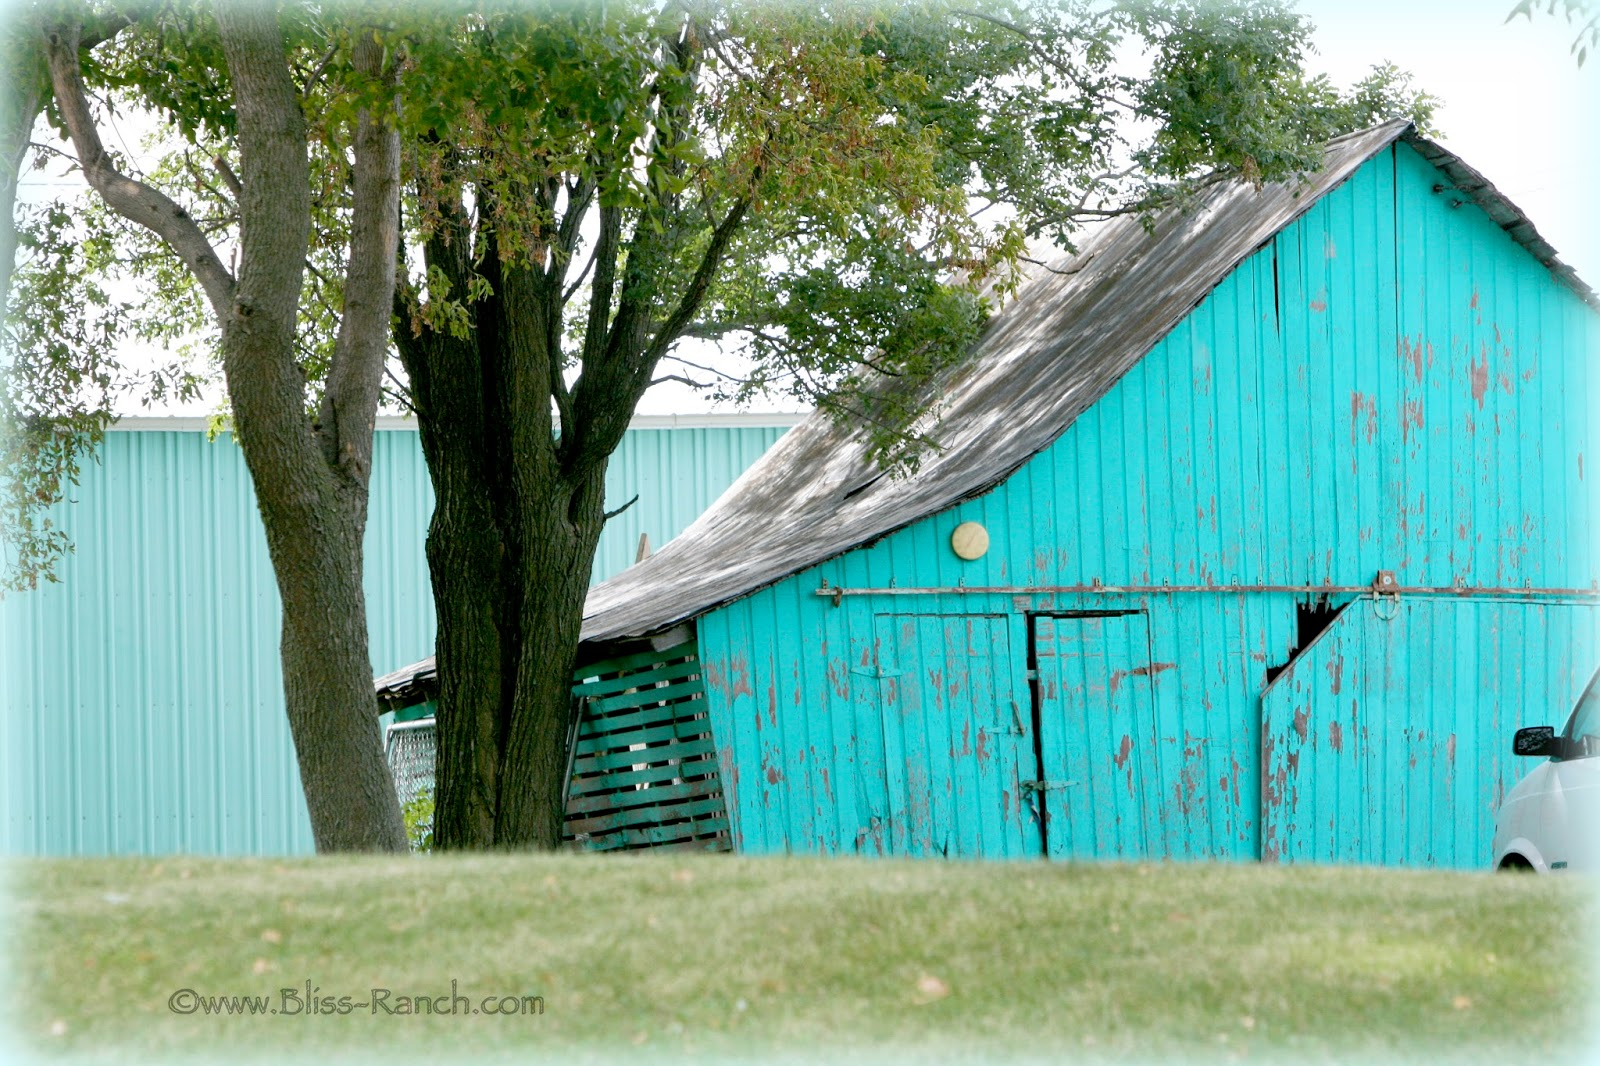 Aqua Barn Wood Minnesota Bliss-Ranch.com